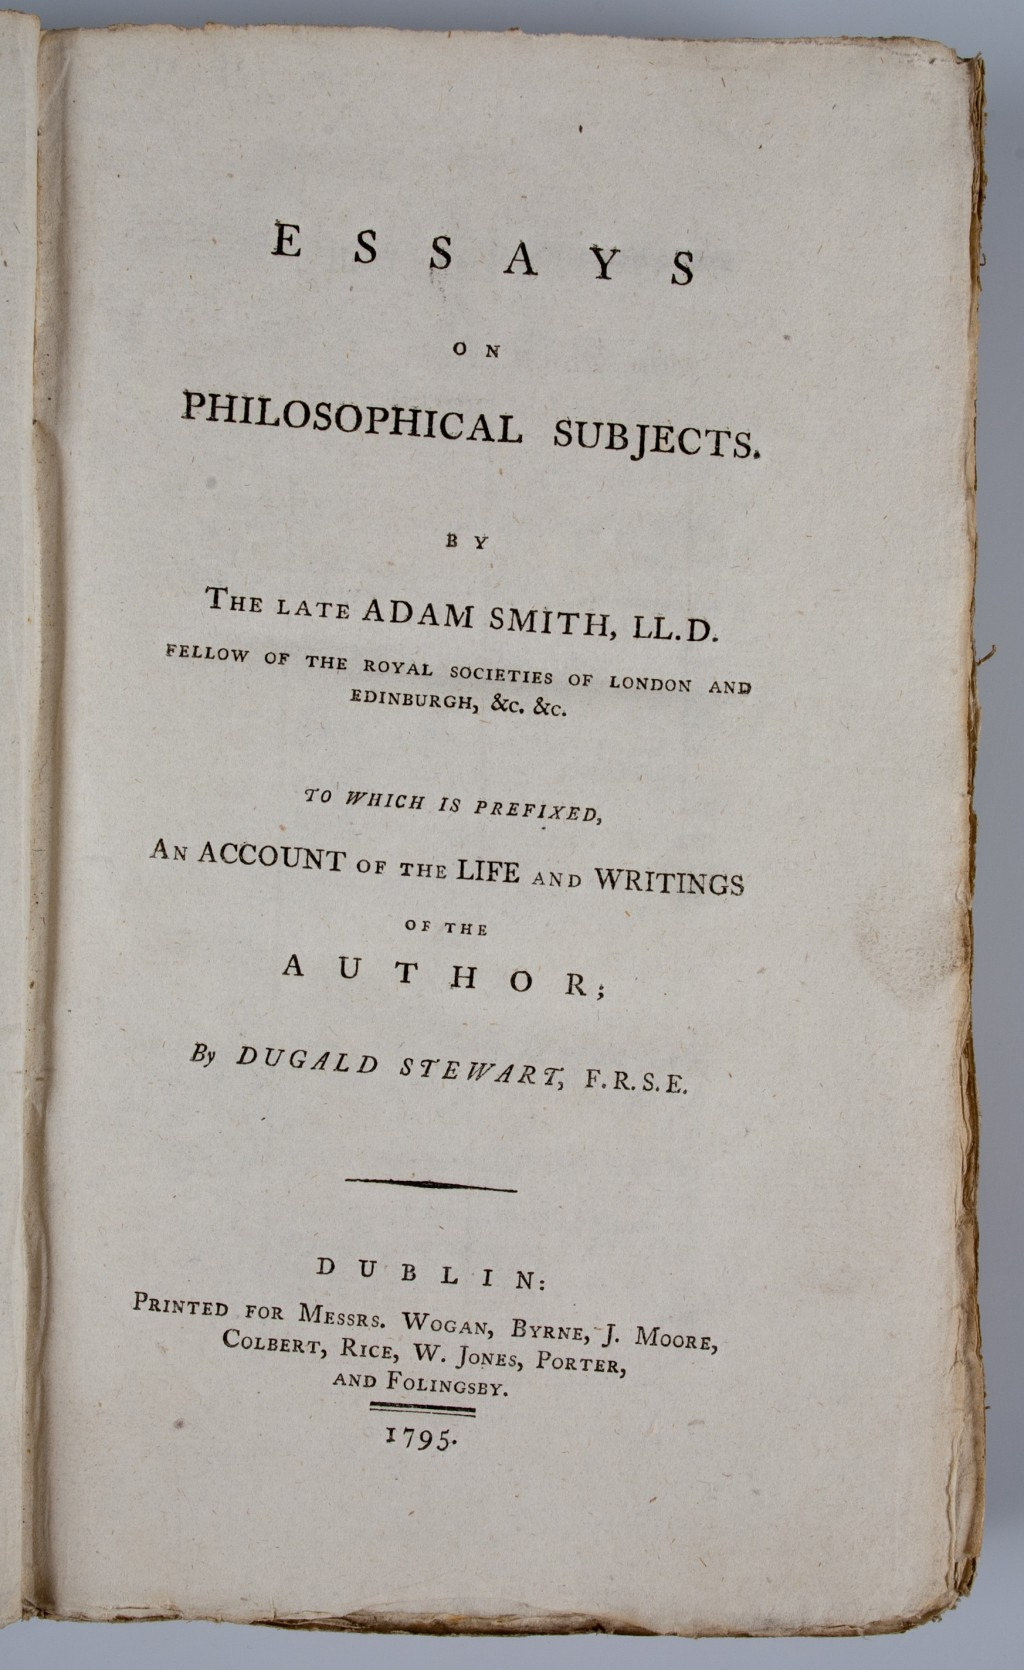 002 Essays On Philosophical Subjects Essay Example 54130 02 Best Smith Pdf Large